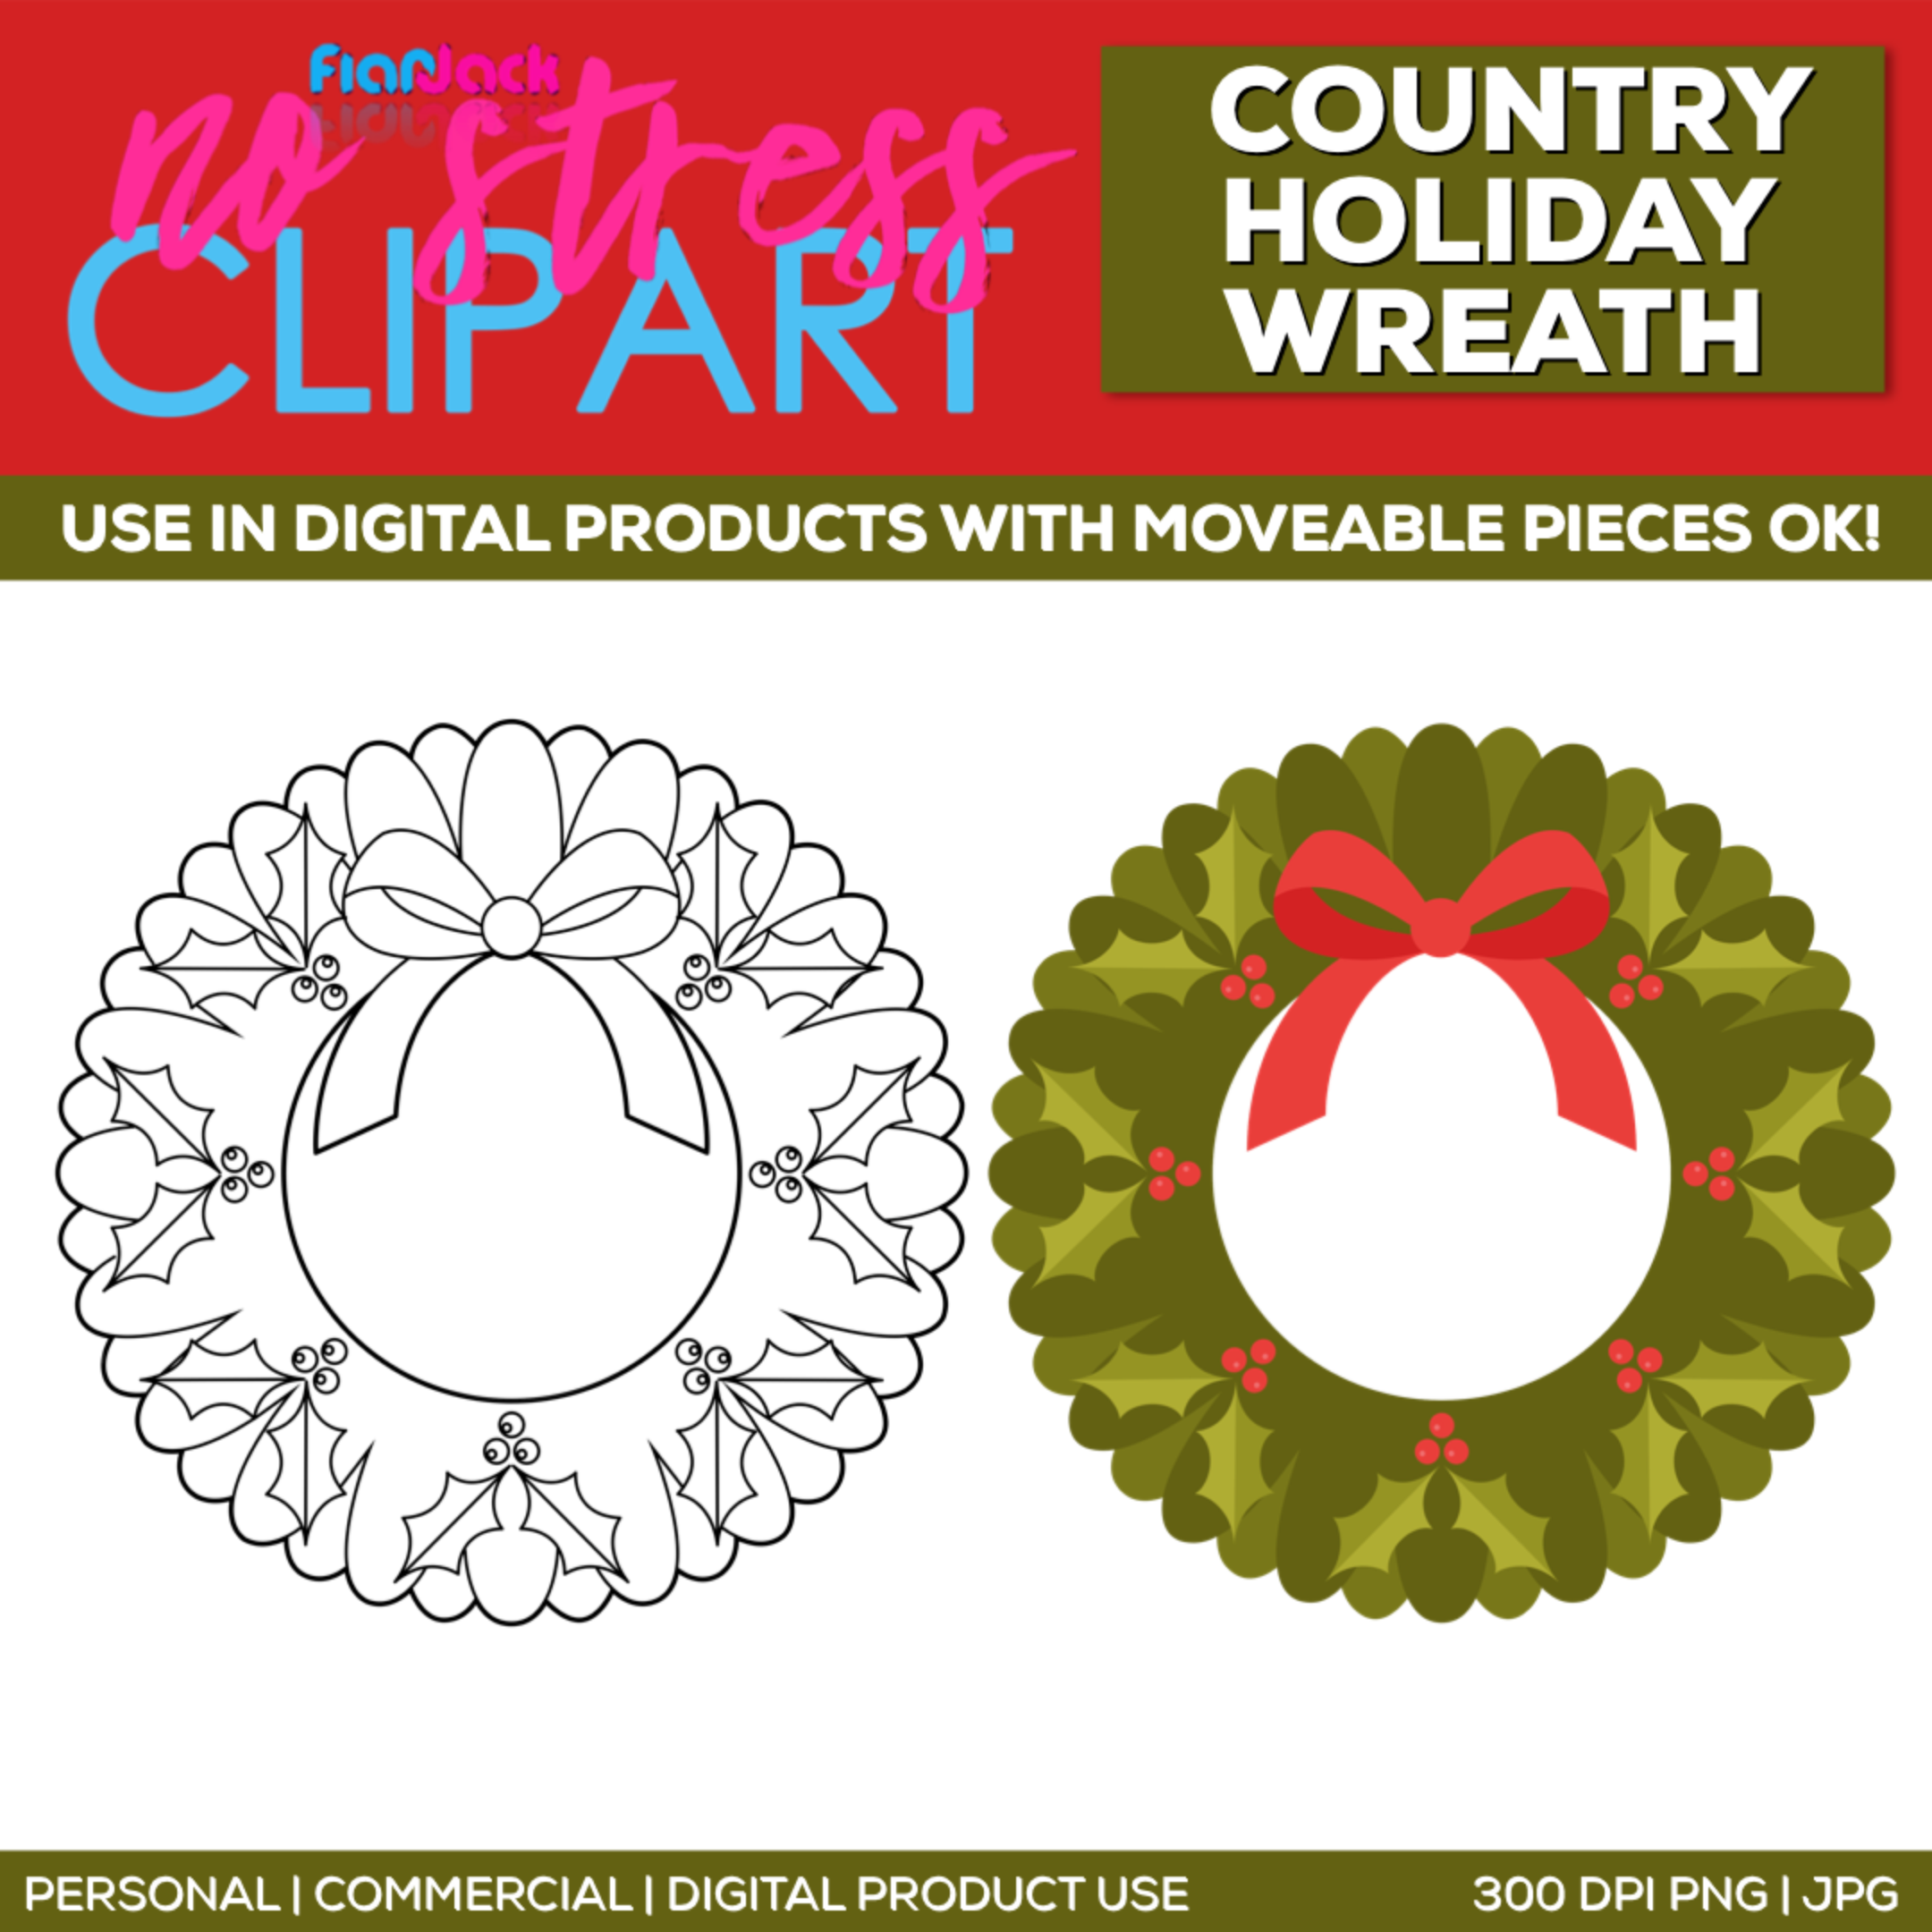 Country Holiday Wreath